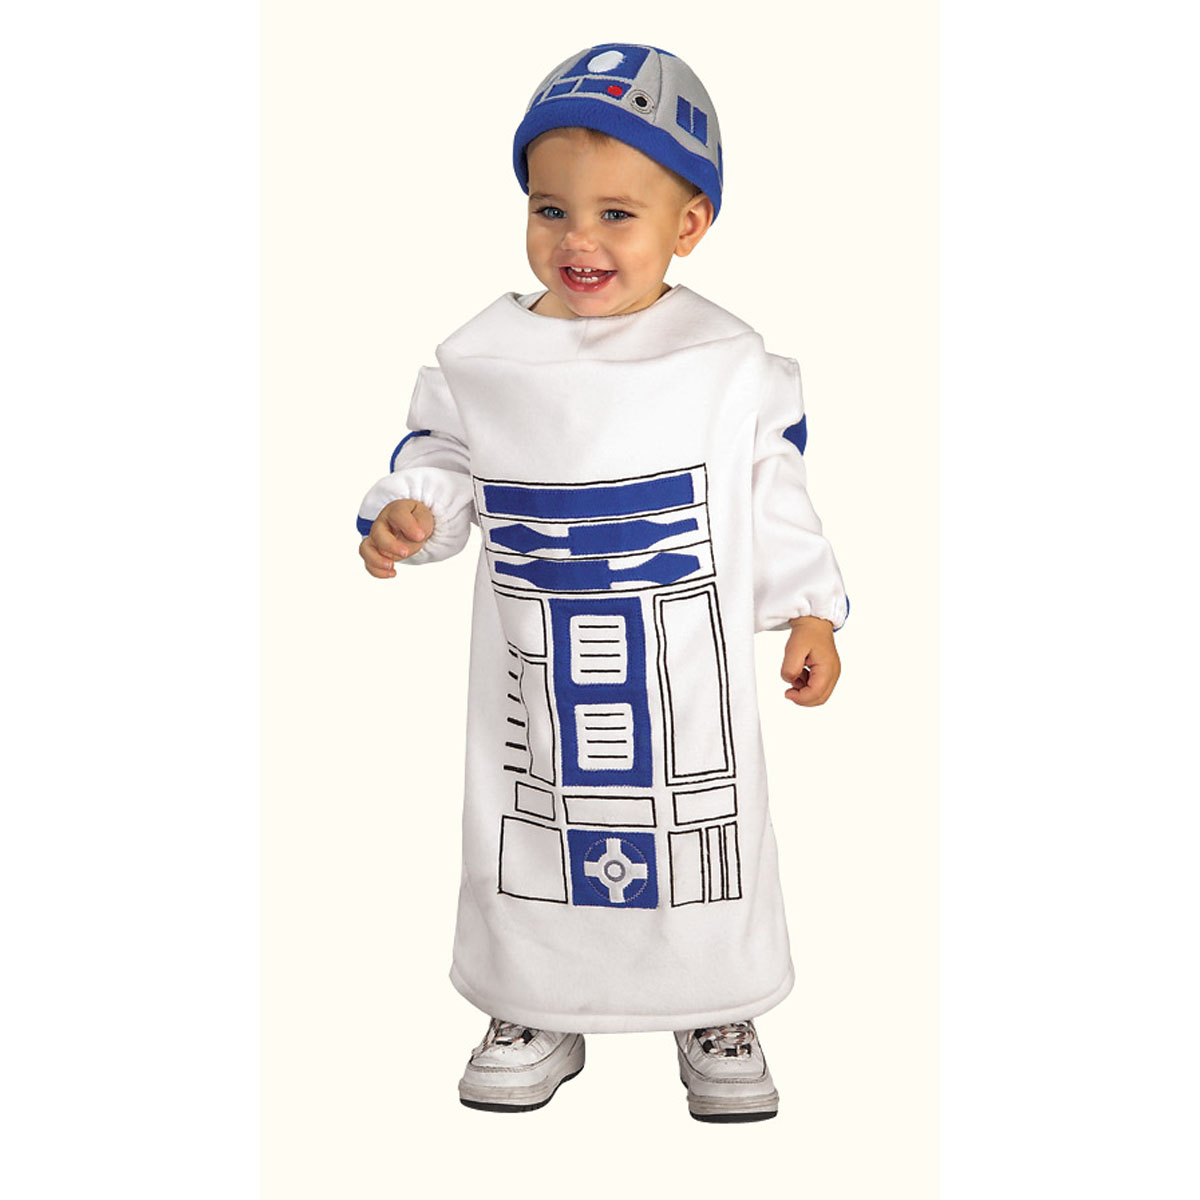 Star Wars Baby Bunting R2D2 Toddler Sized Costume | Rubie's 885310